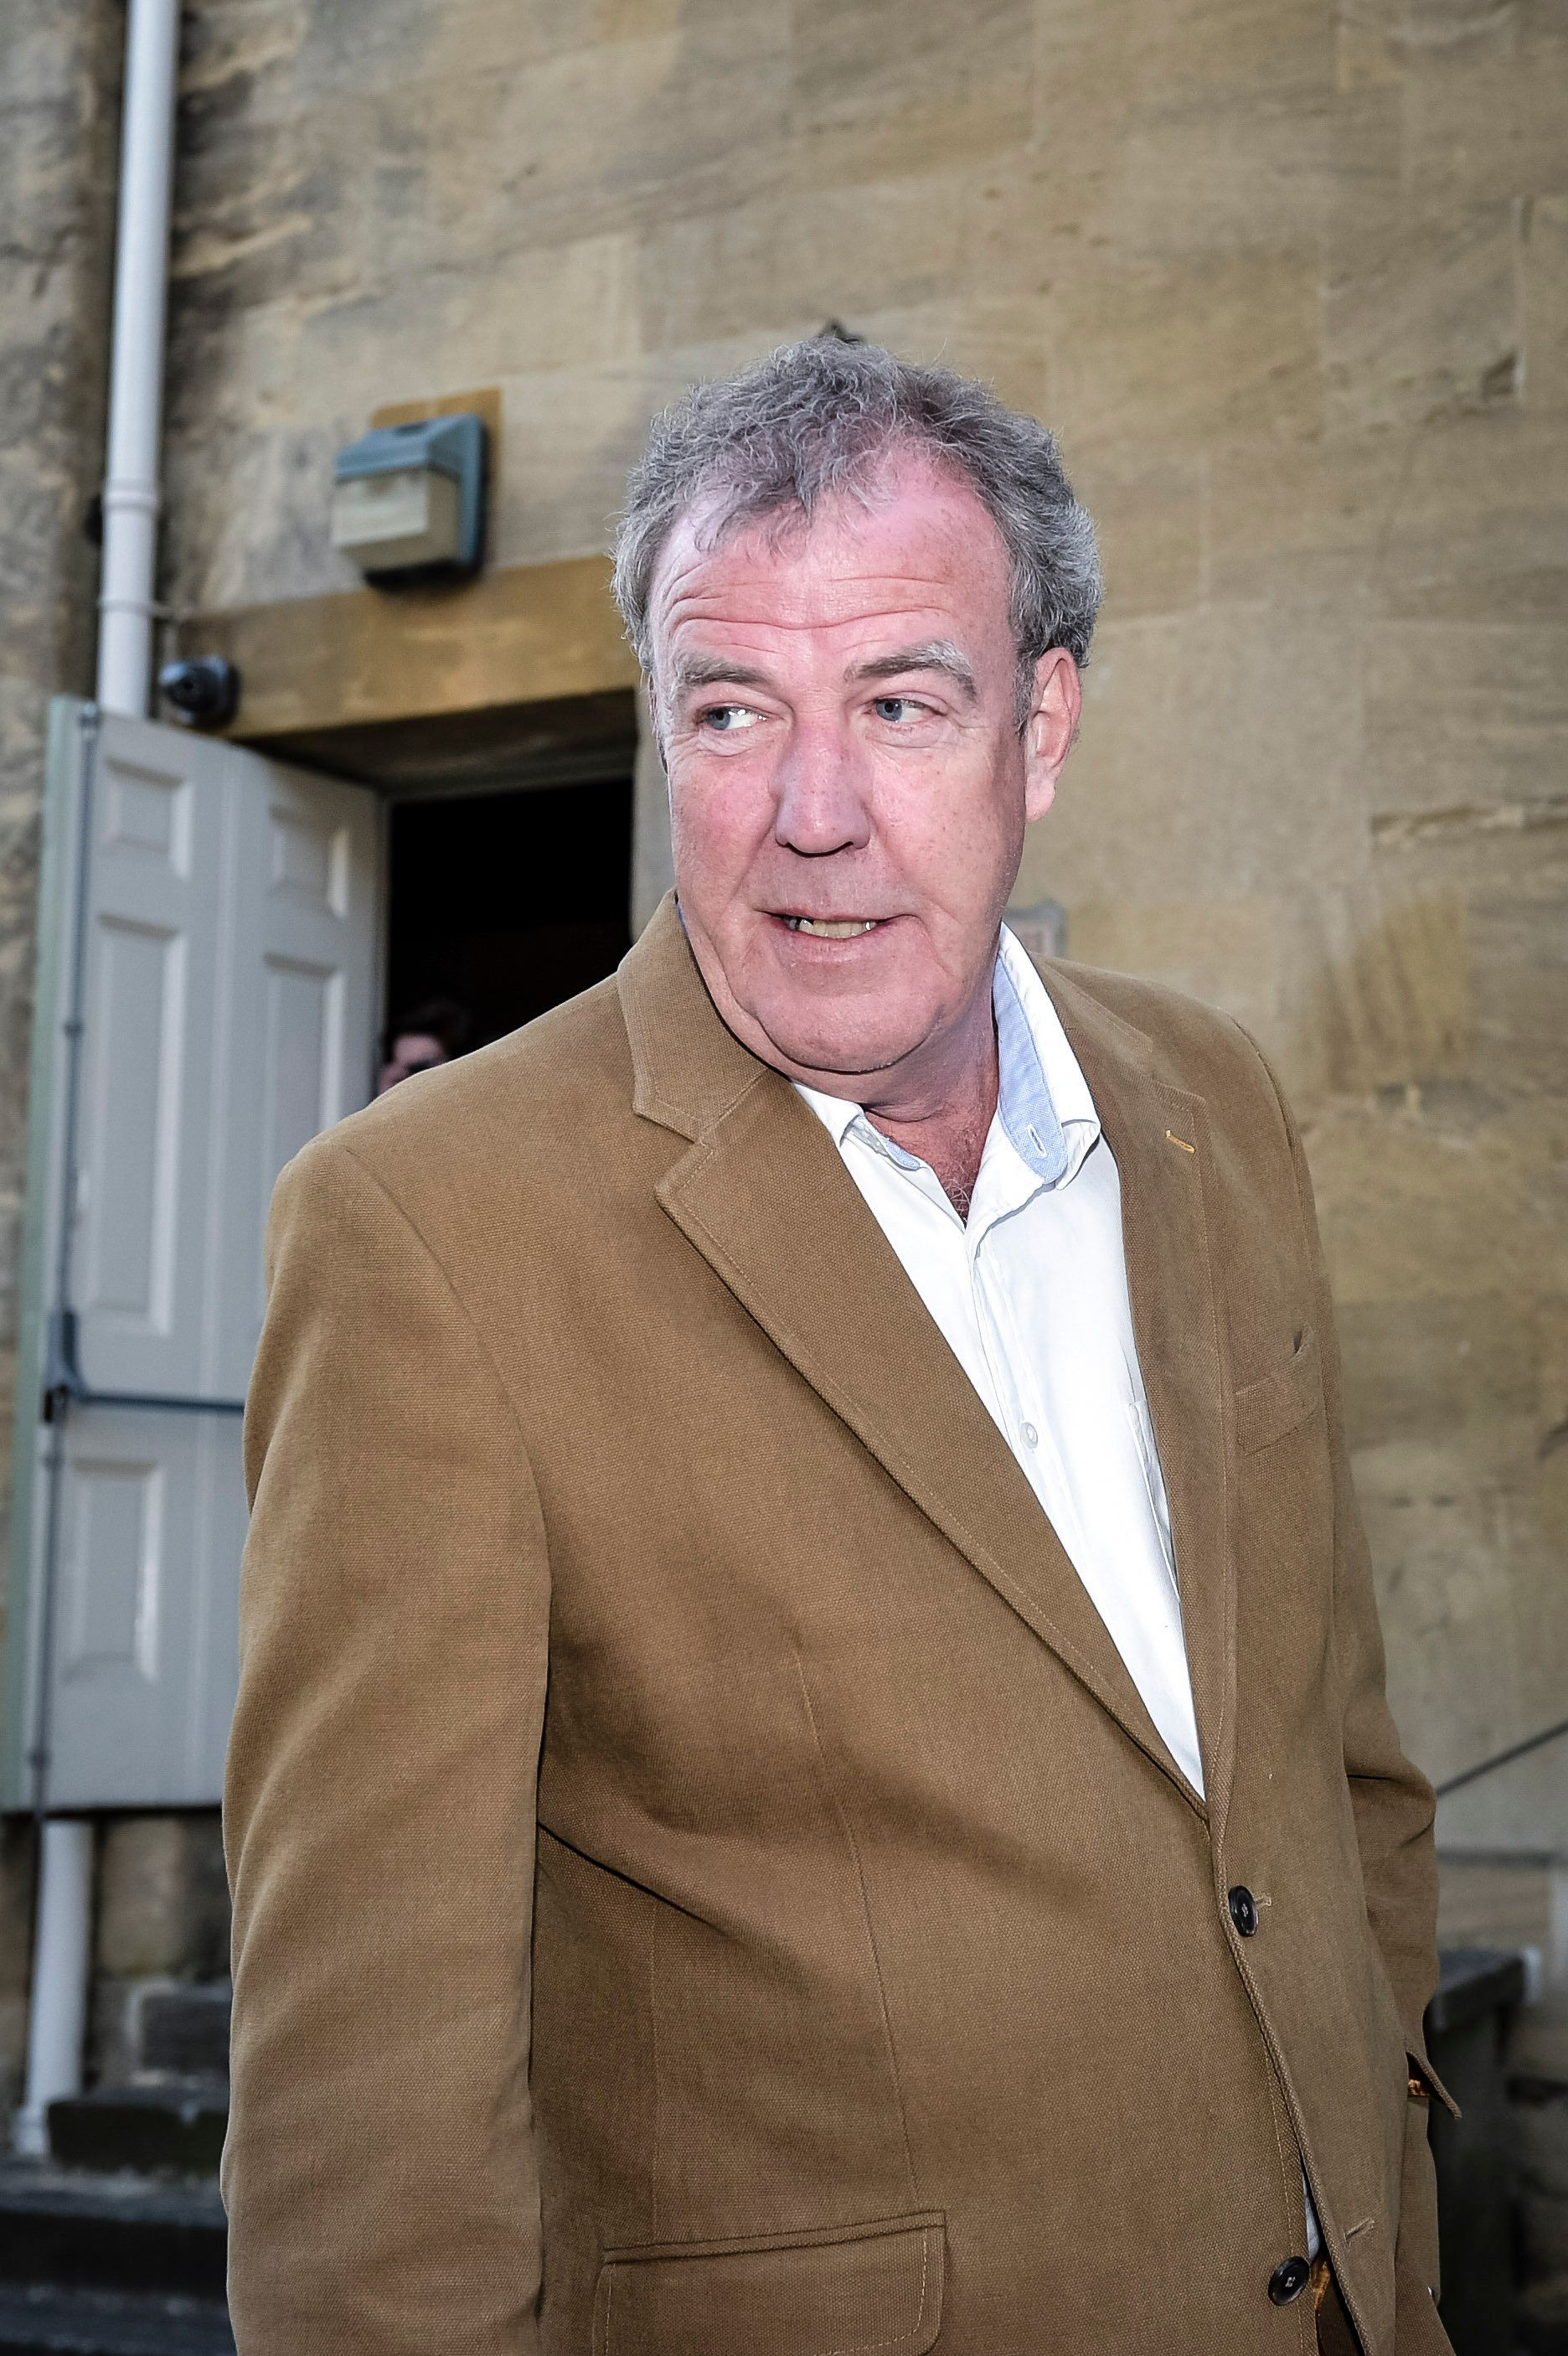 Jeremy Clarkson Opens Up About The Severity Of Recent Hospital Stay